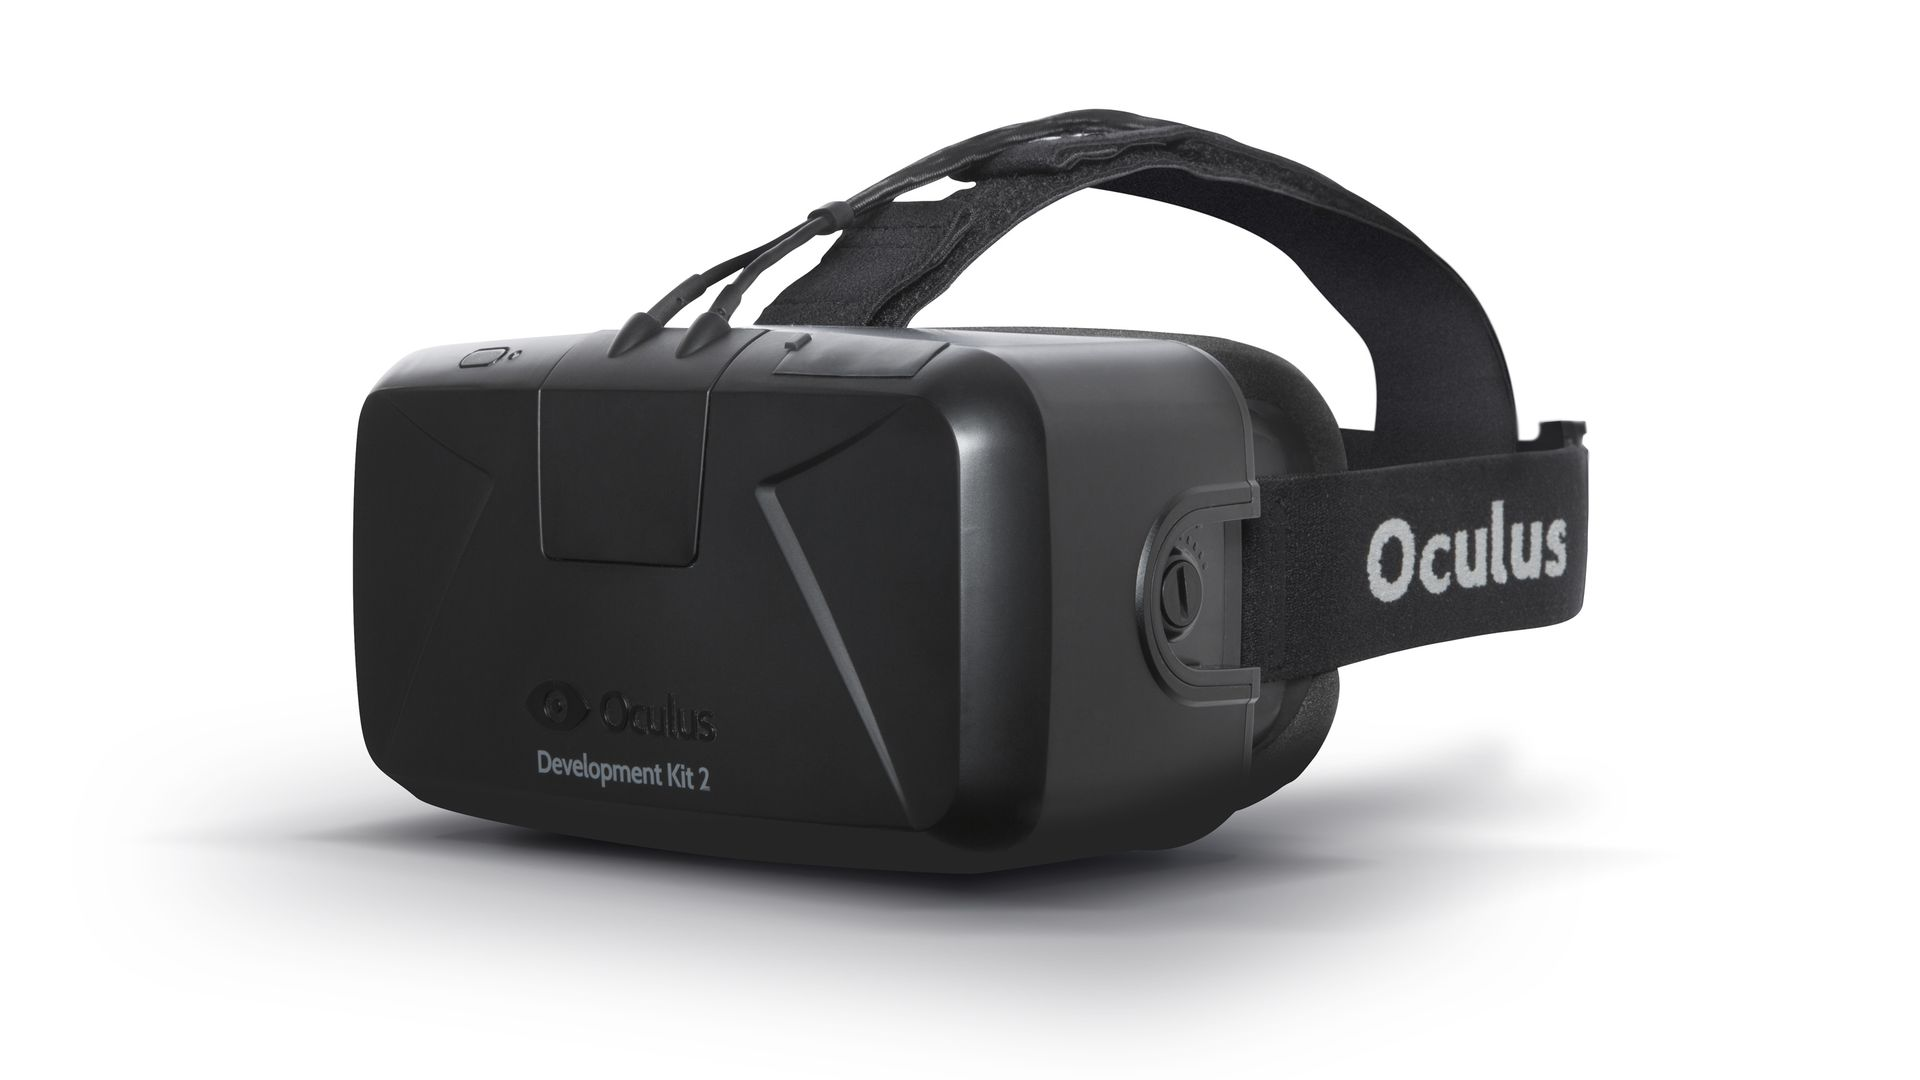 Oculus Rift Developer Kit 2